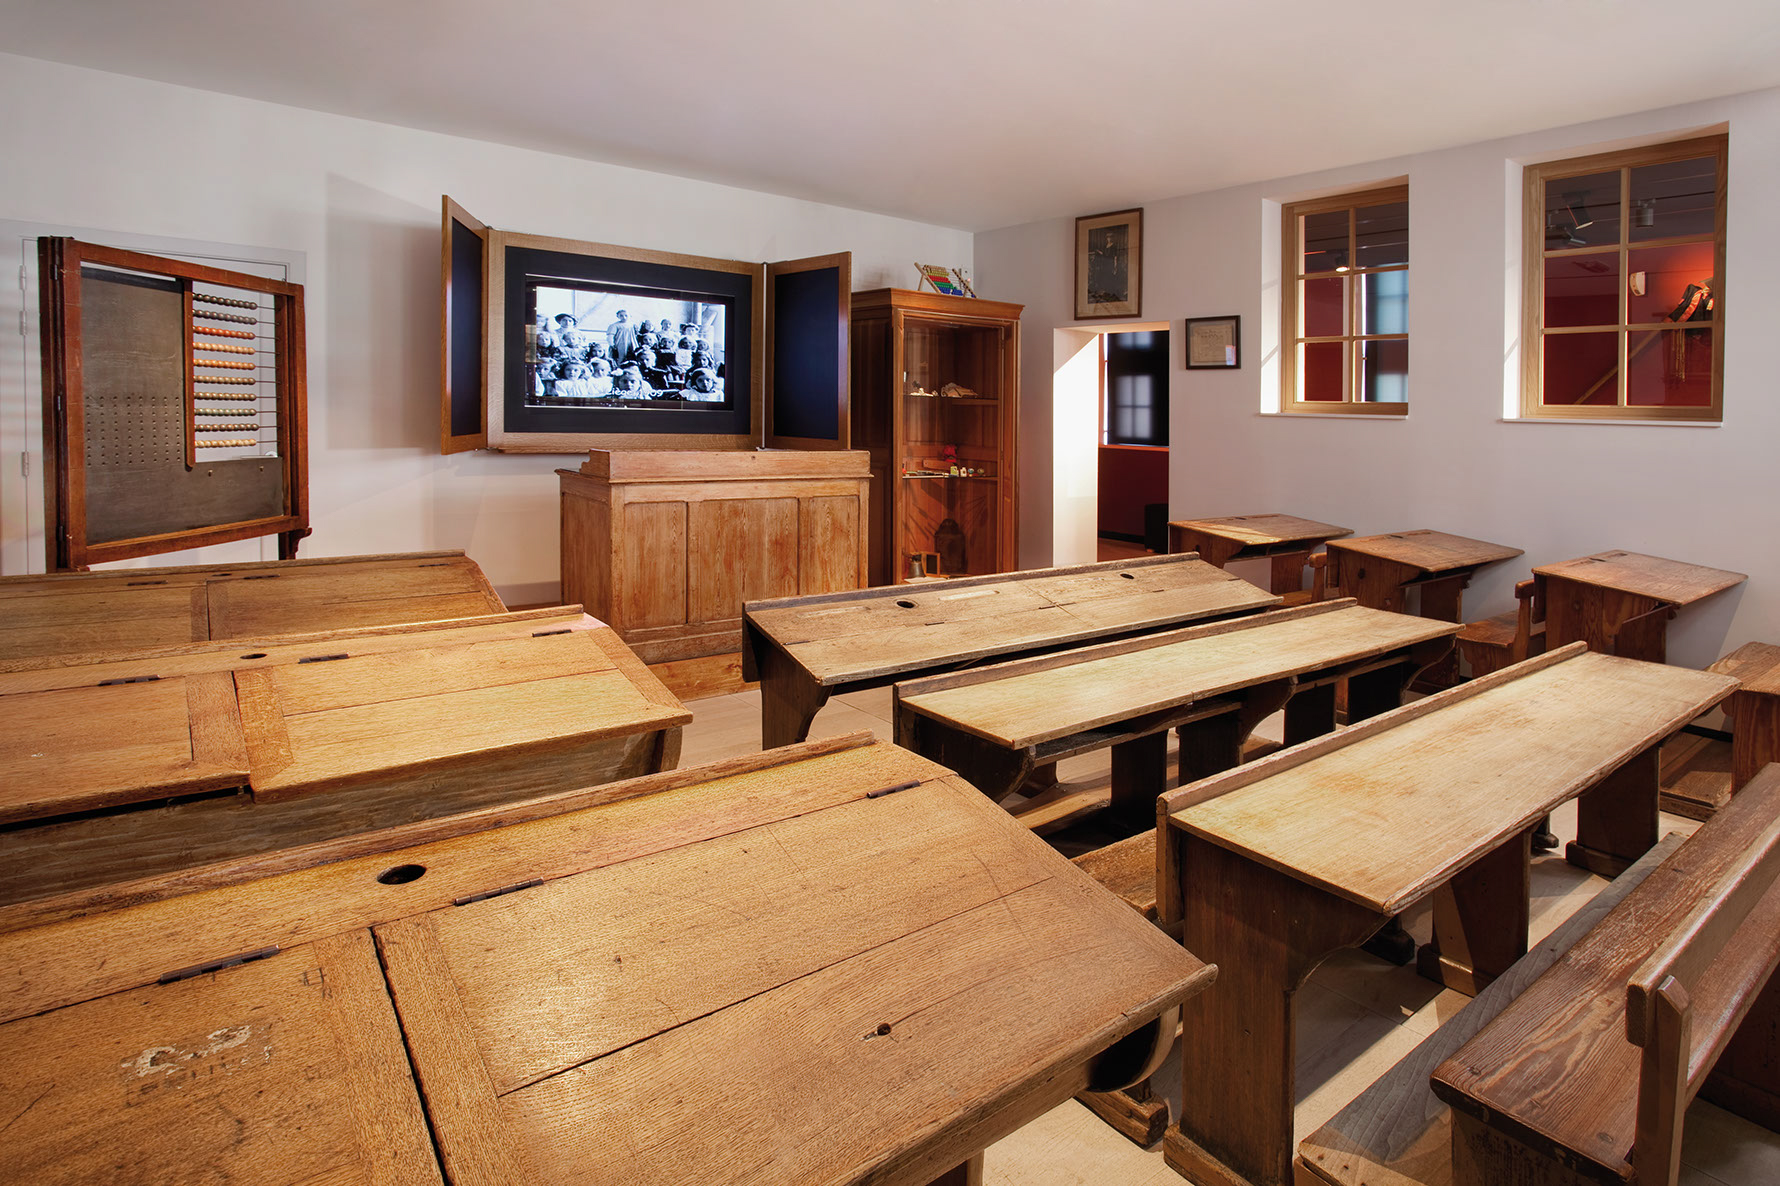 Discover the history and life in Wallonia at the Museum of Walloon Life in Liège